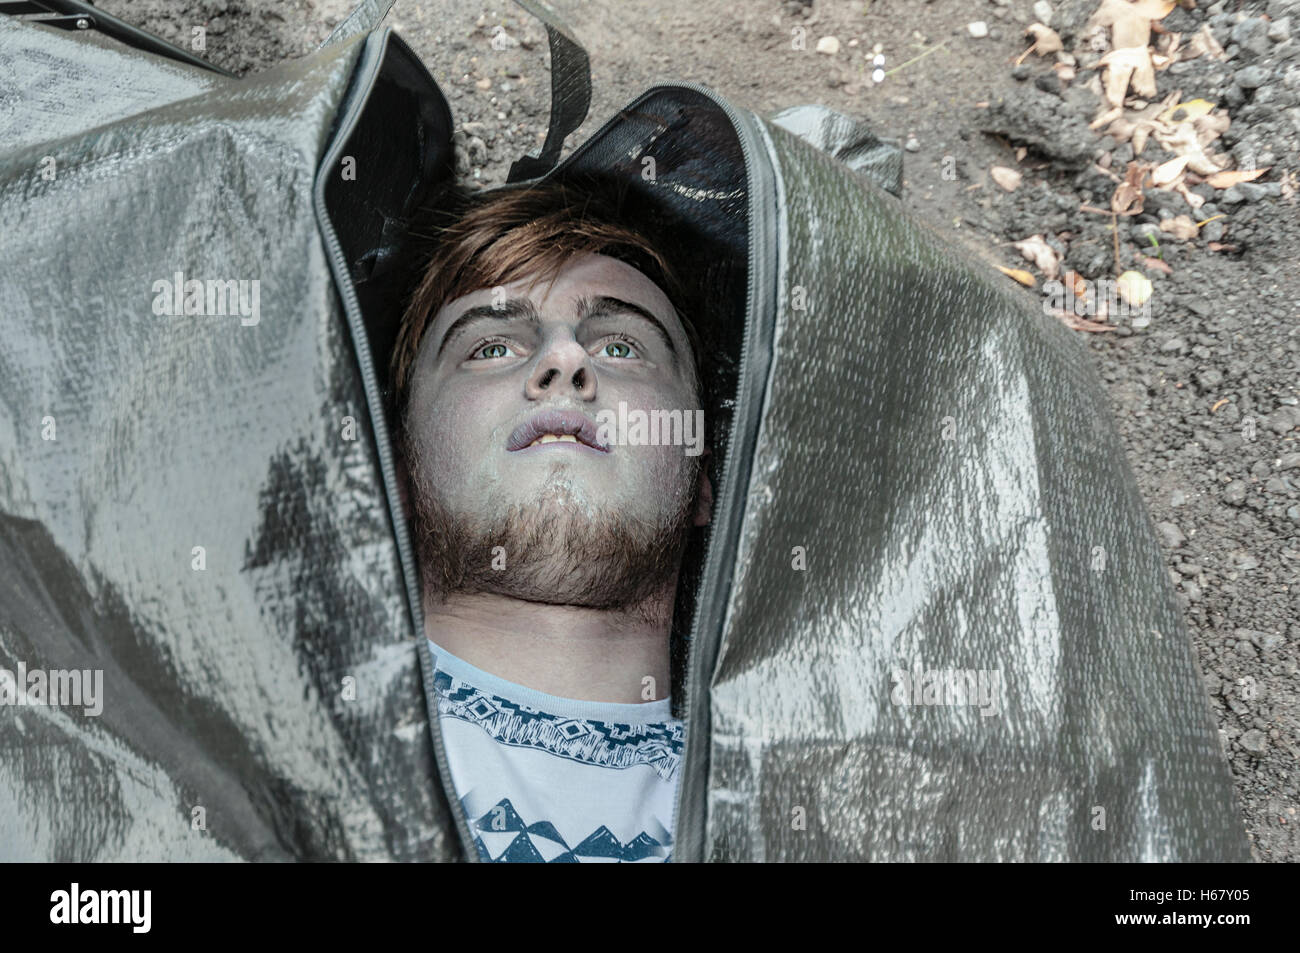 The body of a young man inside a body bag about to be zipped up. - Stock Image